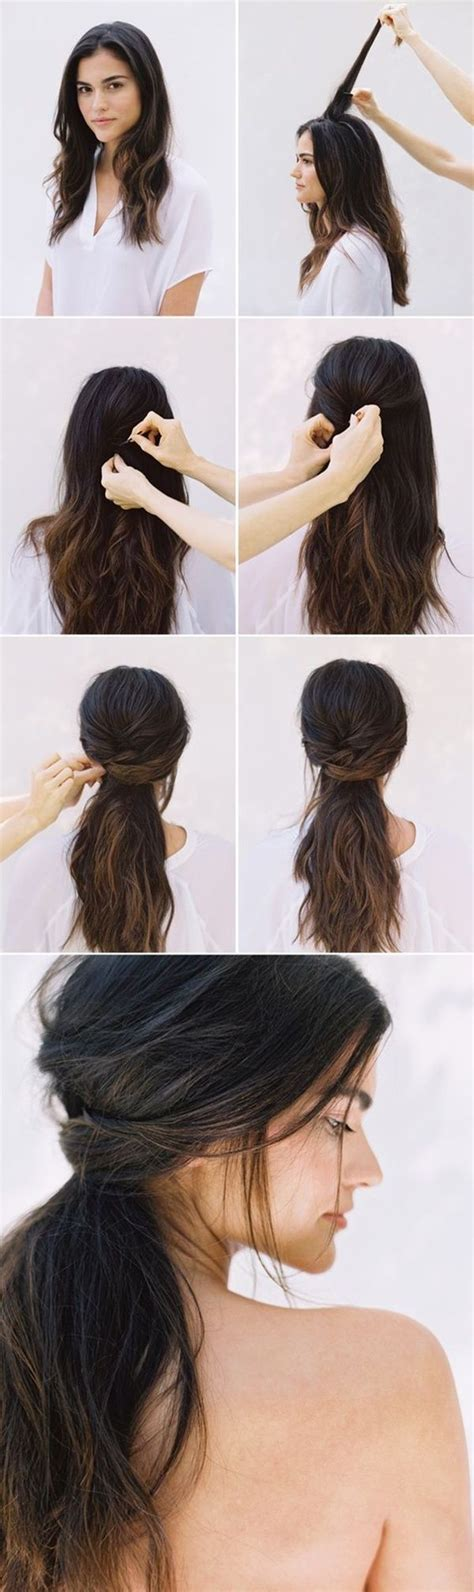 Hairstyles Step By Step by 25 Best Ideas About Step By Step Hairstyles On